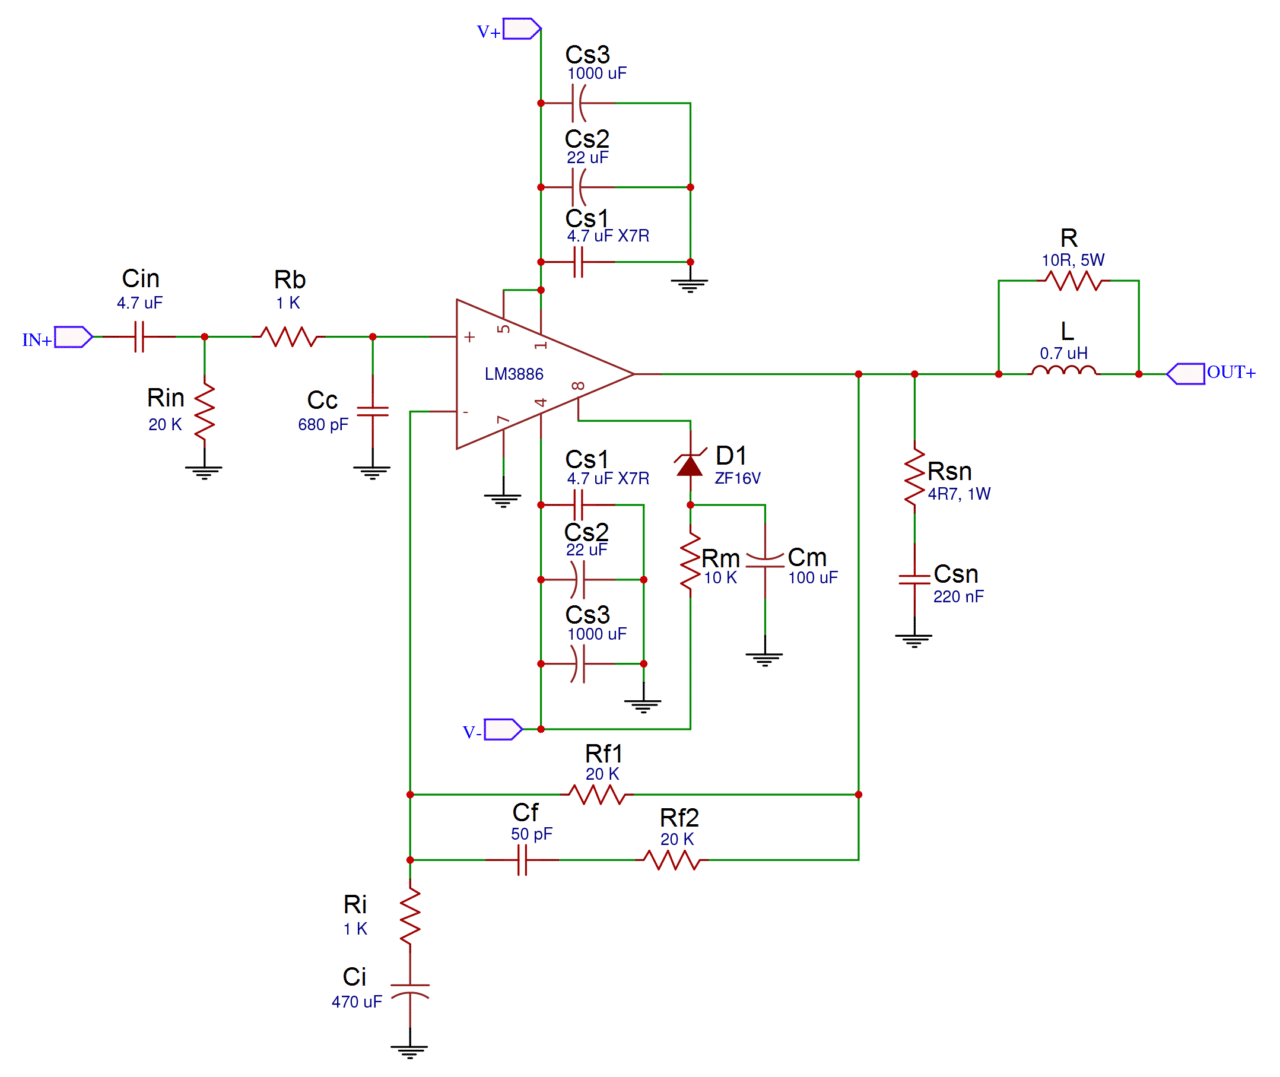 A Complete Guide To Design And Build Hi Fi Lm3886 Amplifier Atx Power Supply Schematic Diagram Car Interior Ill Be Using The Below Its Basically Same As One In Datasheet But With Optional Stability Components Included